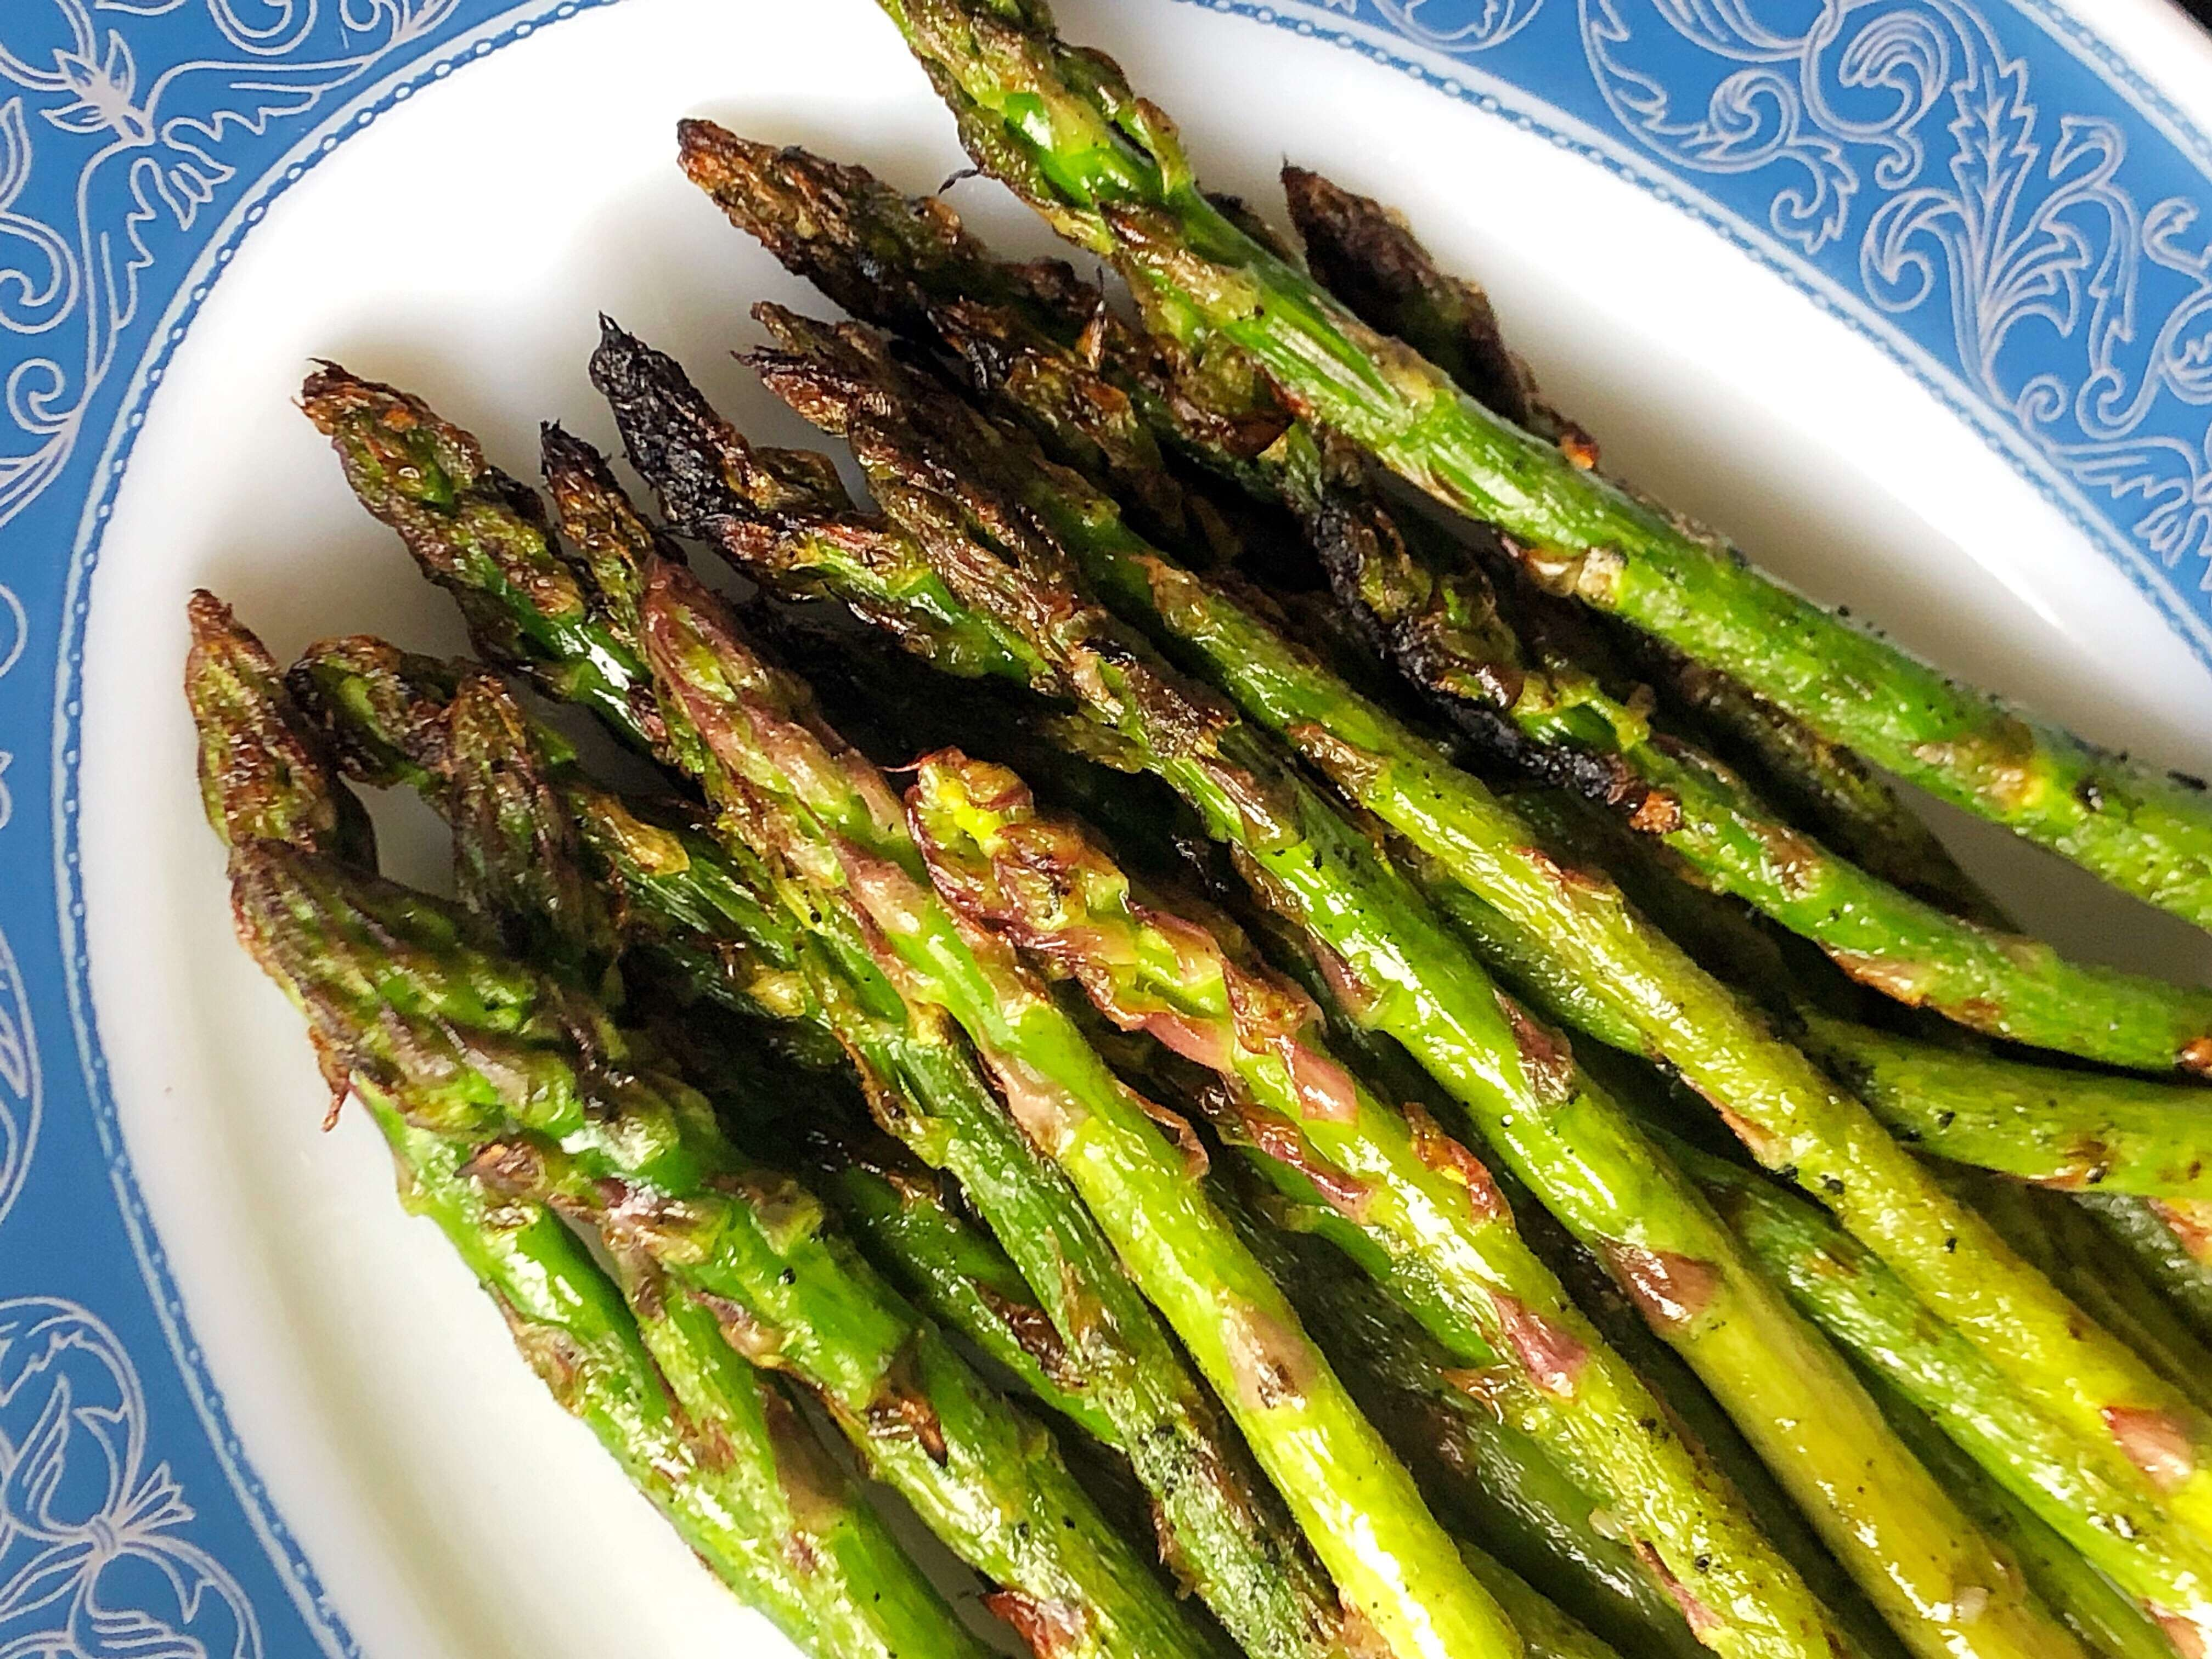 Garlic Olive Oil Grilled Asparagus